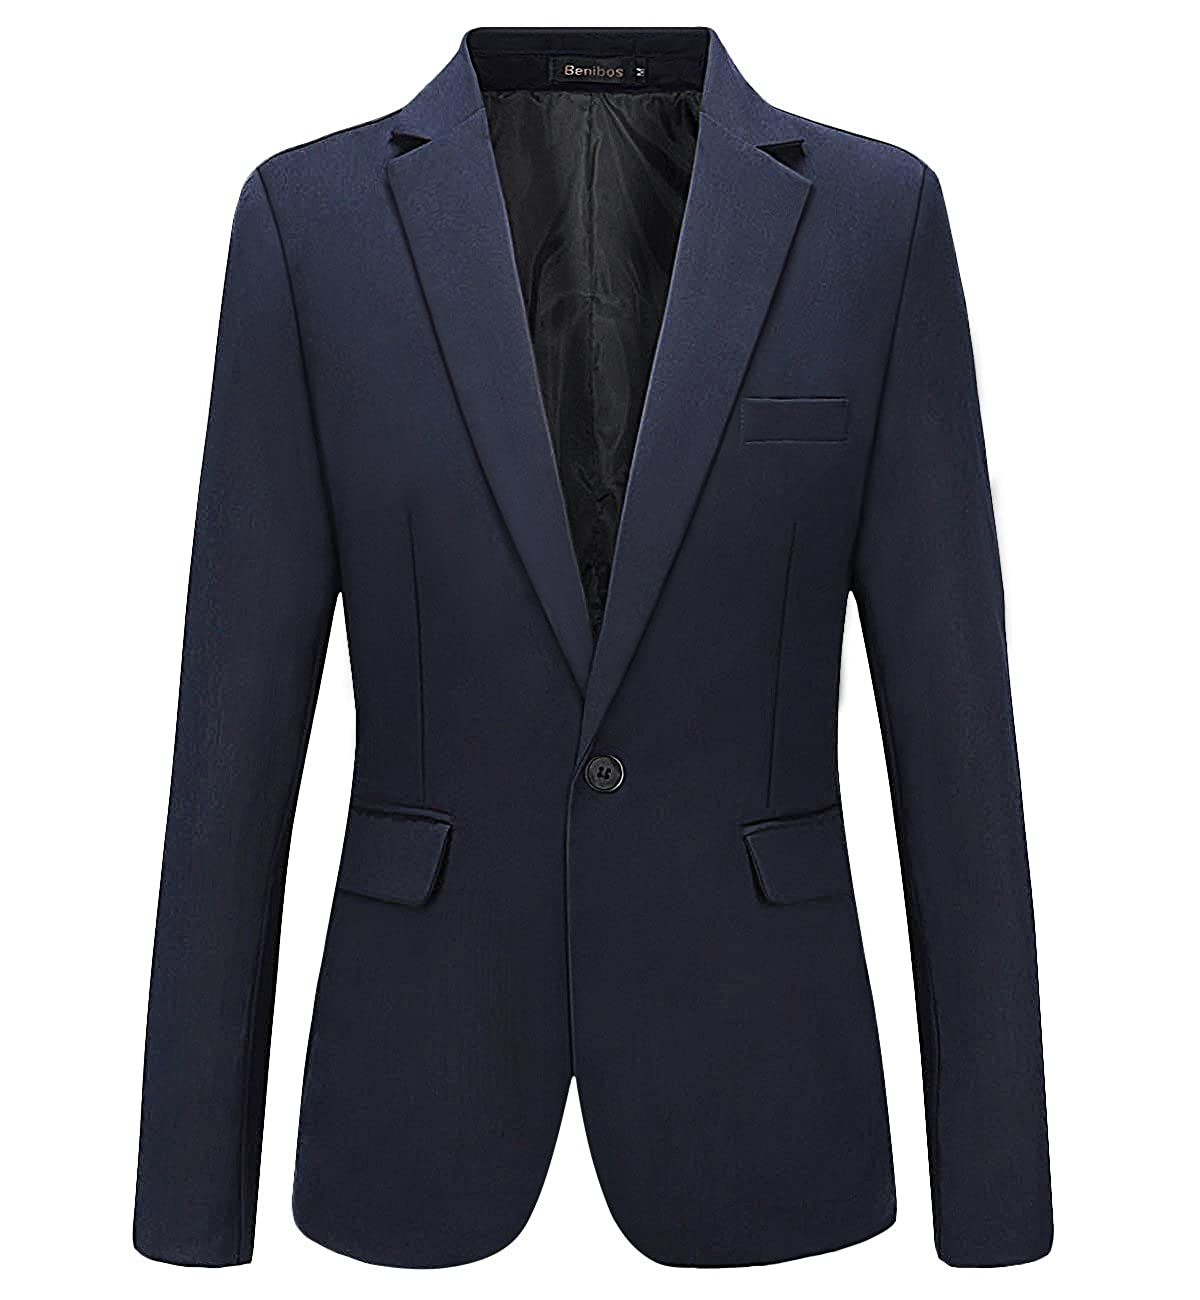 Mens Casual Slim Fit One Button Blazer Suit Jacket